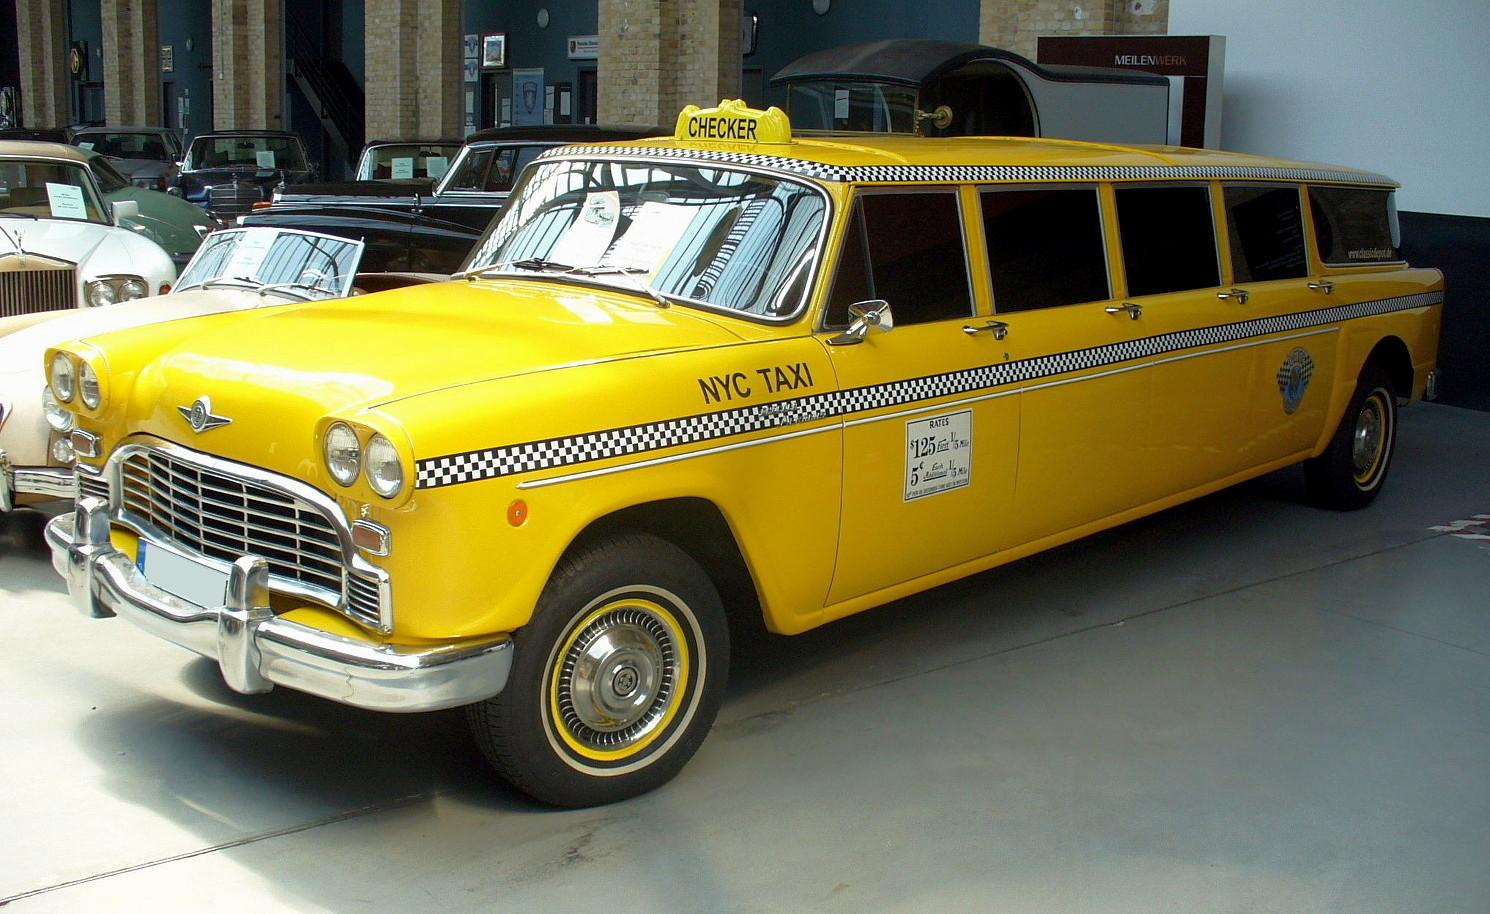 Checker aerobus photo - 2